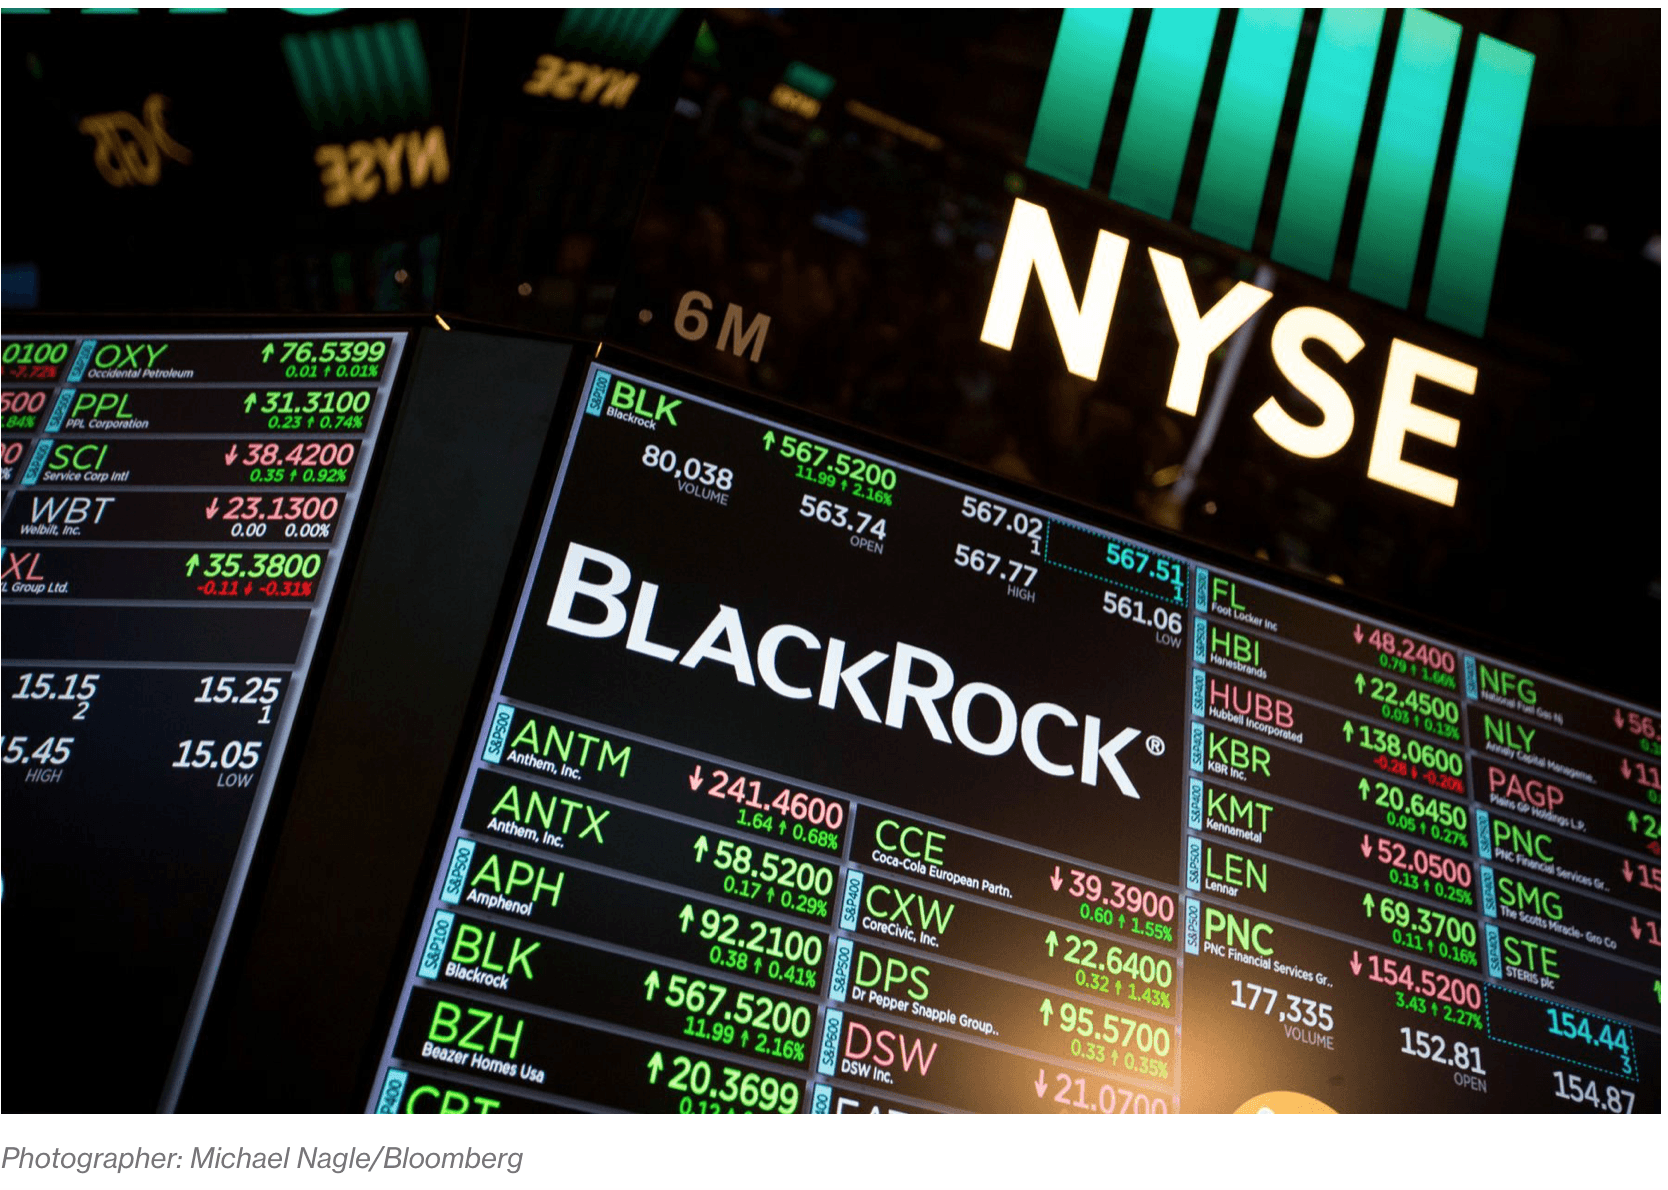 BlackRock - Dividend Growth From The Passive Investing Trend